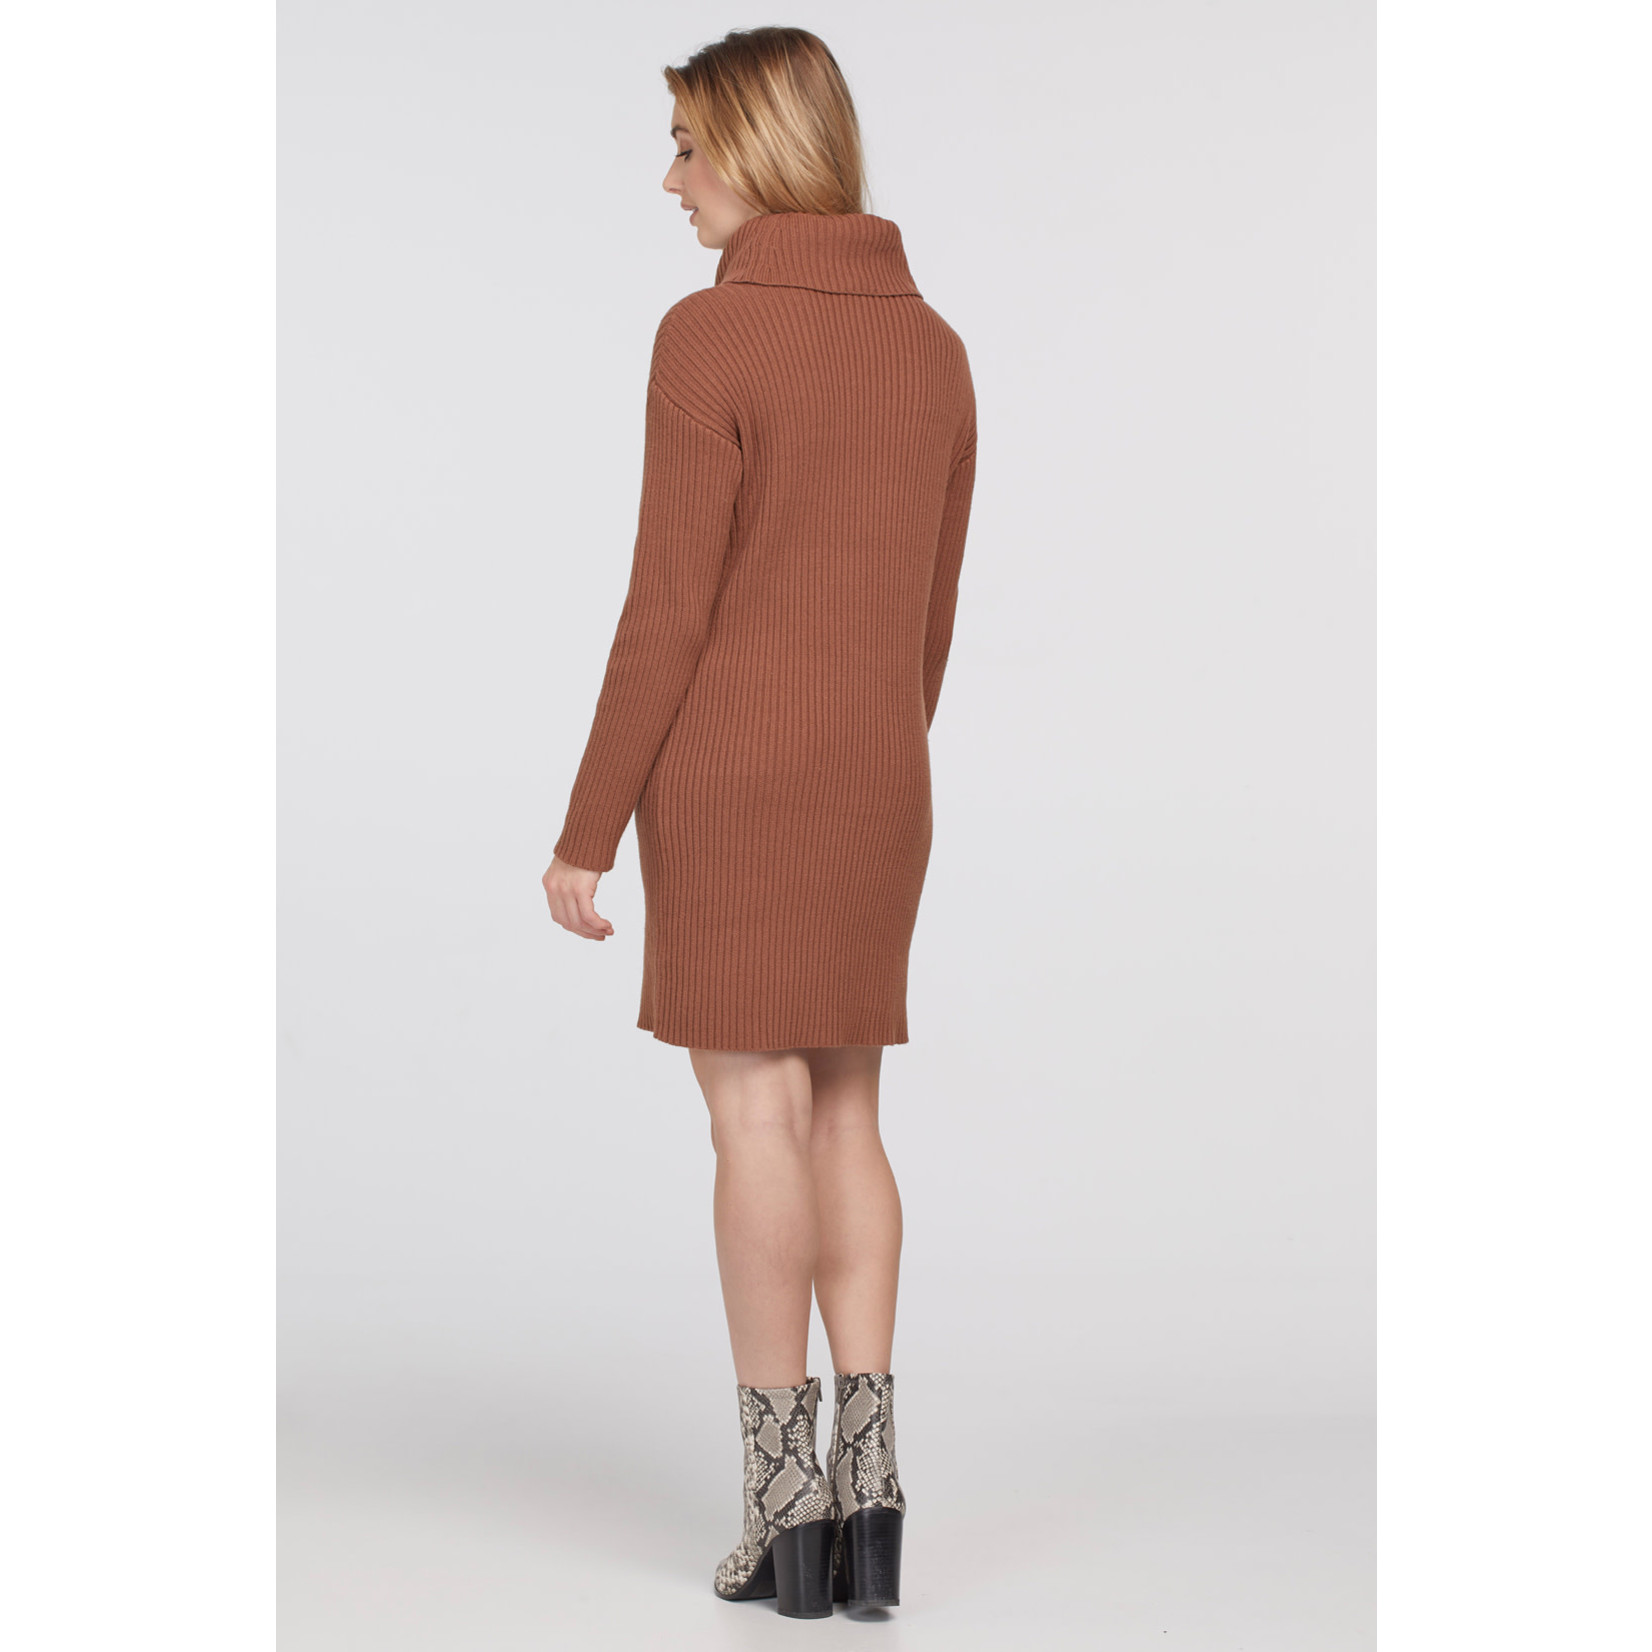 Tribal Cowl Neck Sweater Dress *More Colors*